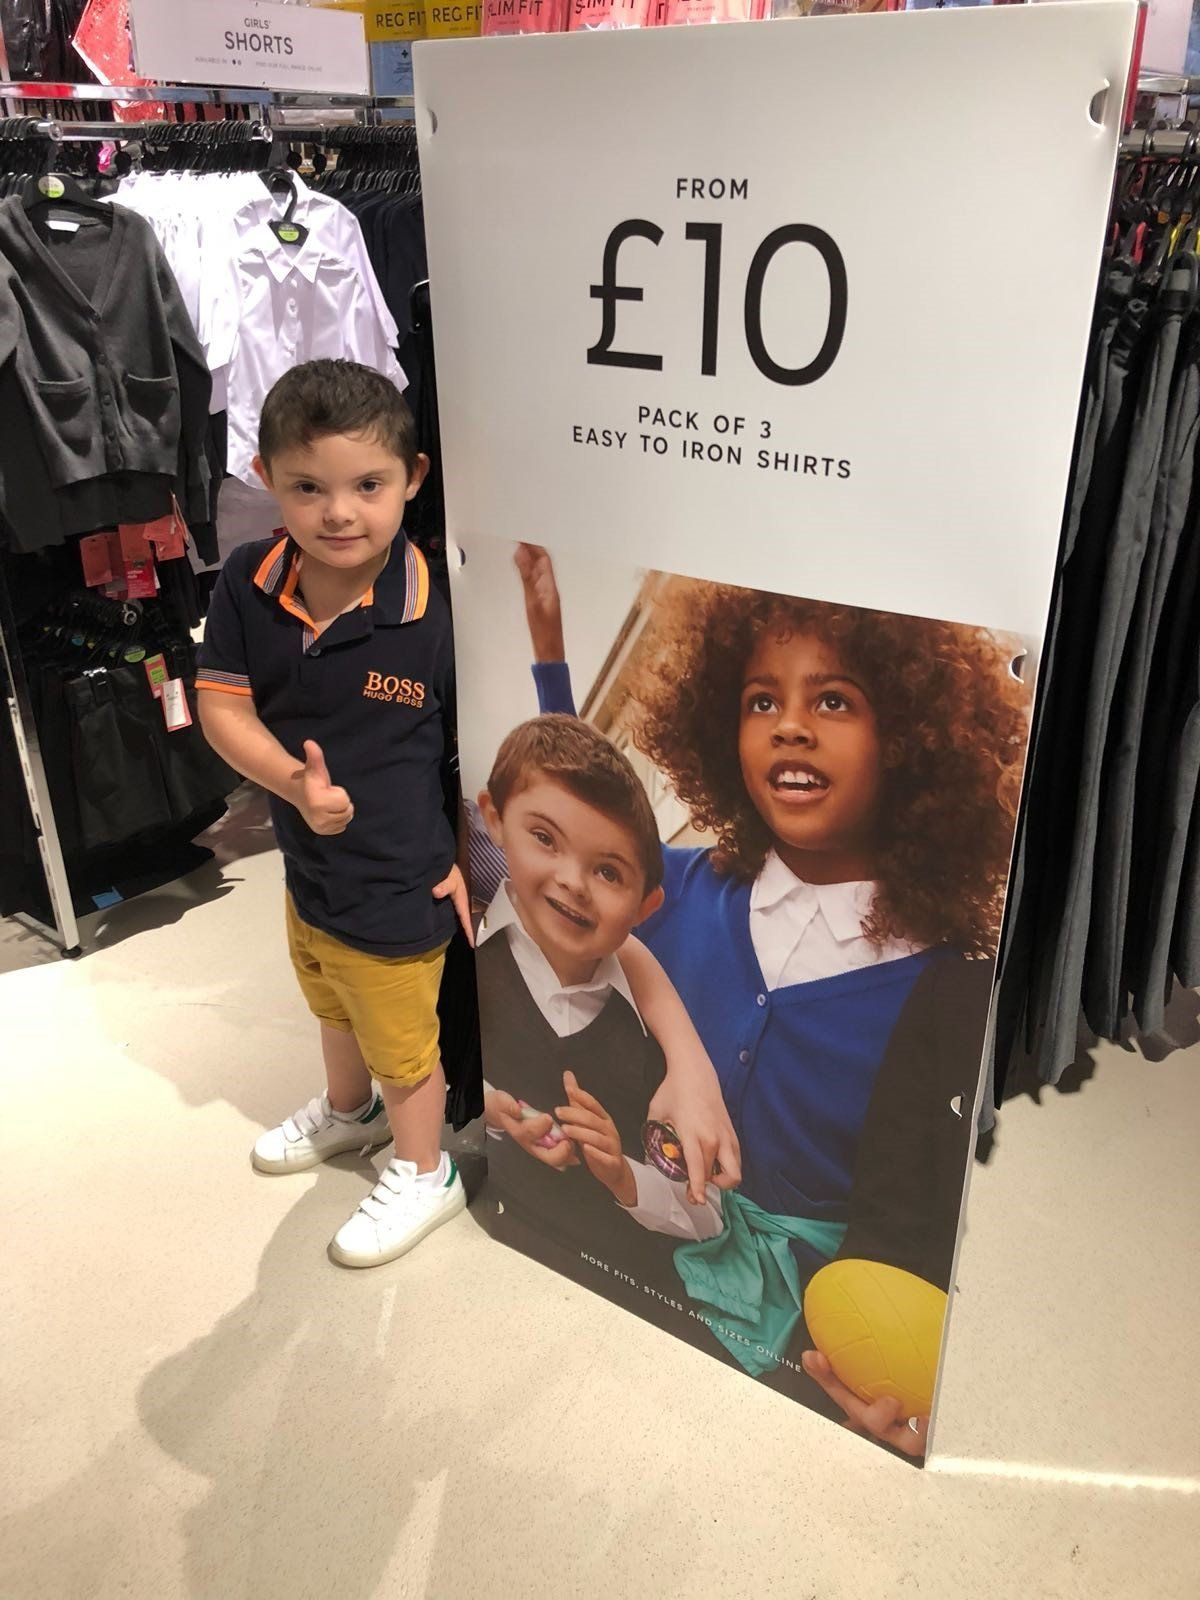 Why Representing Disability Matters: The Moment A Boy With Down's Syndrome Saw Himself In An M&S